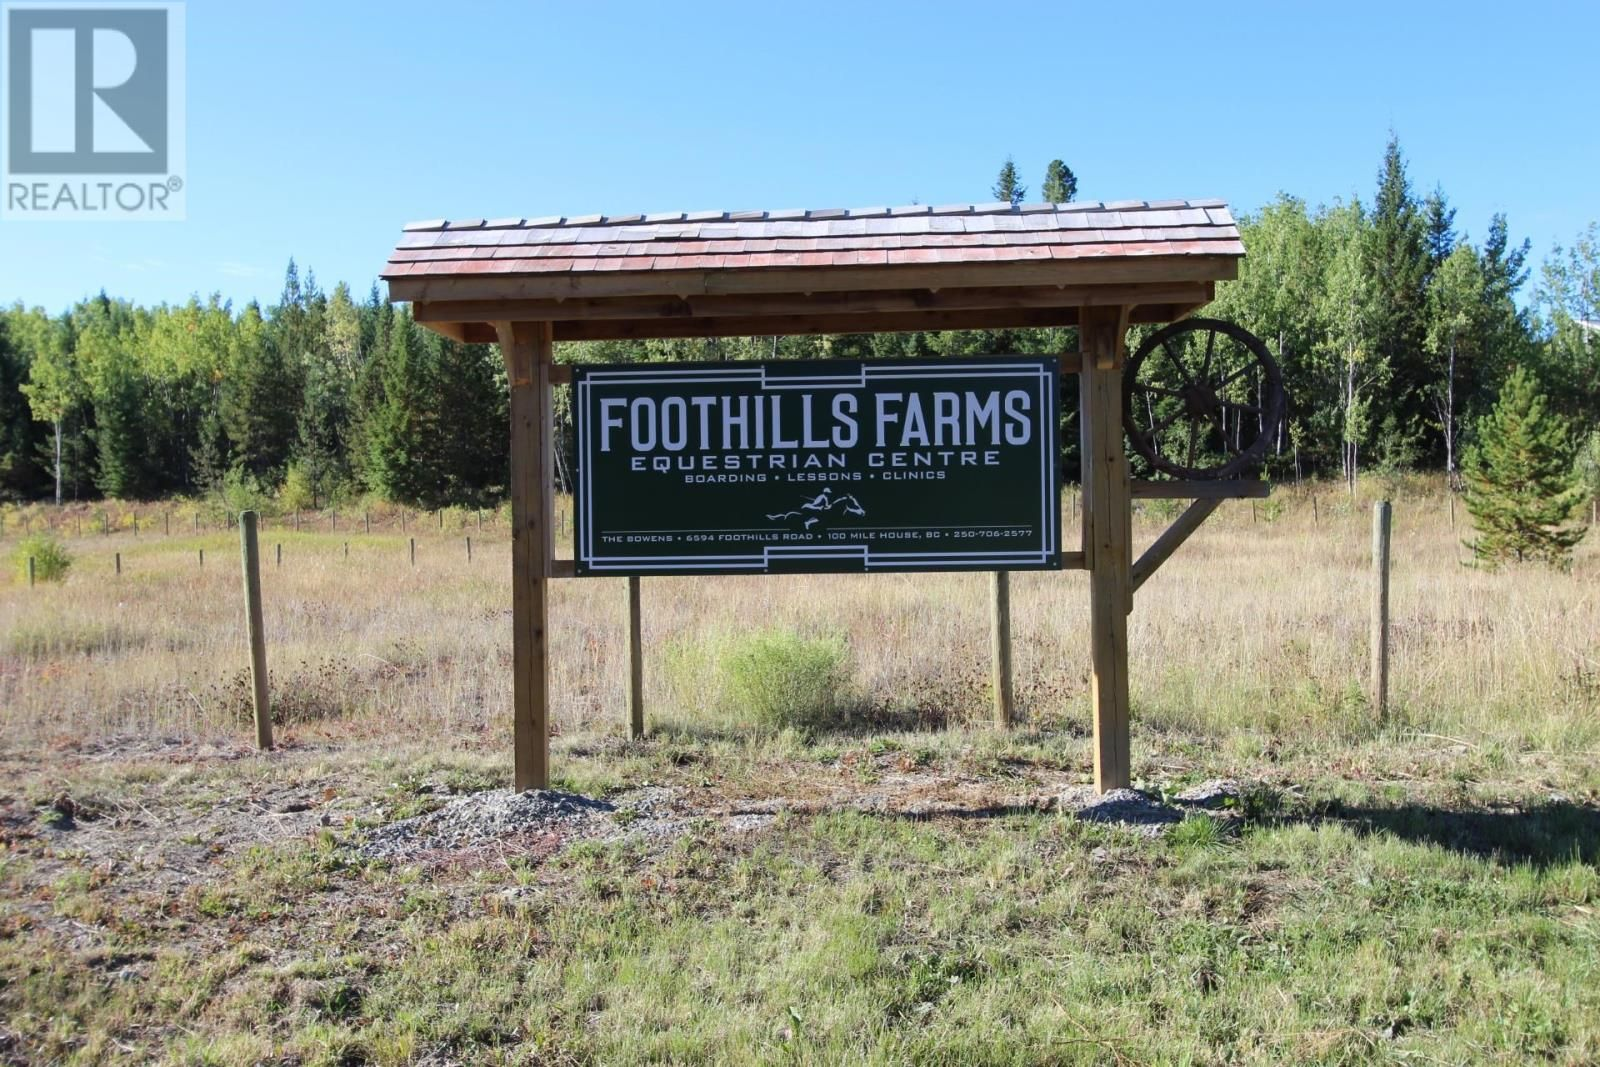 Main Photo: 6594 FOOTHILLS ROAD in 100 Mile House (Zone 10): Agriculture for sale : MLS®# C8040123